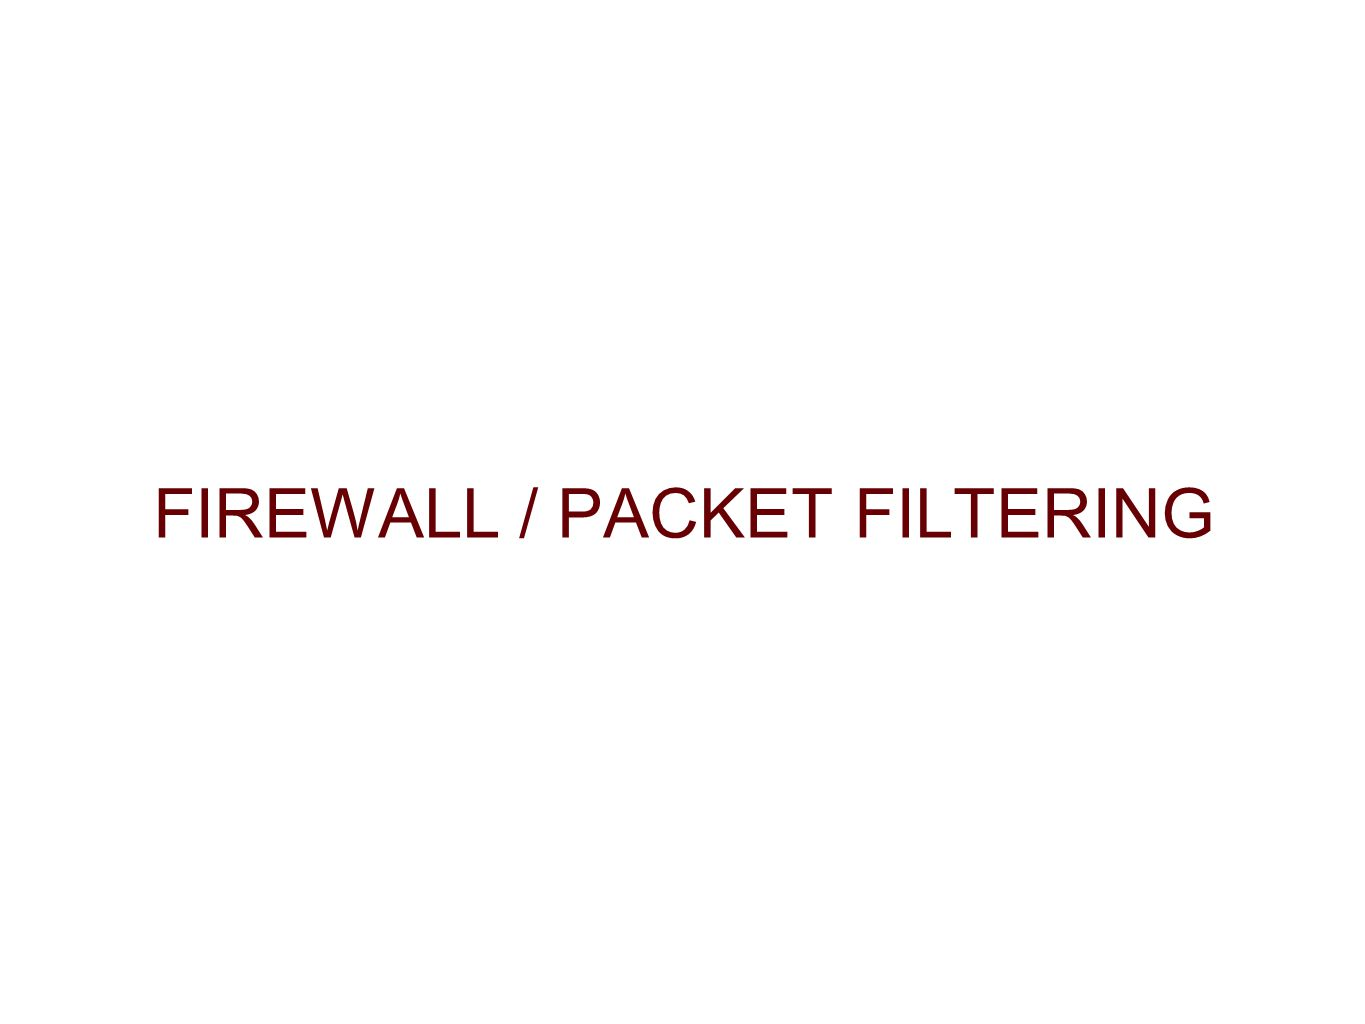 FIREWALL / PACKET FILTERING